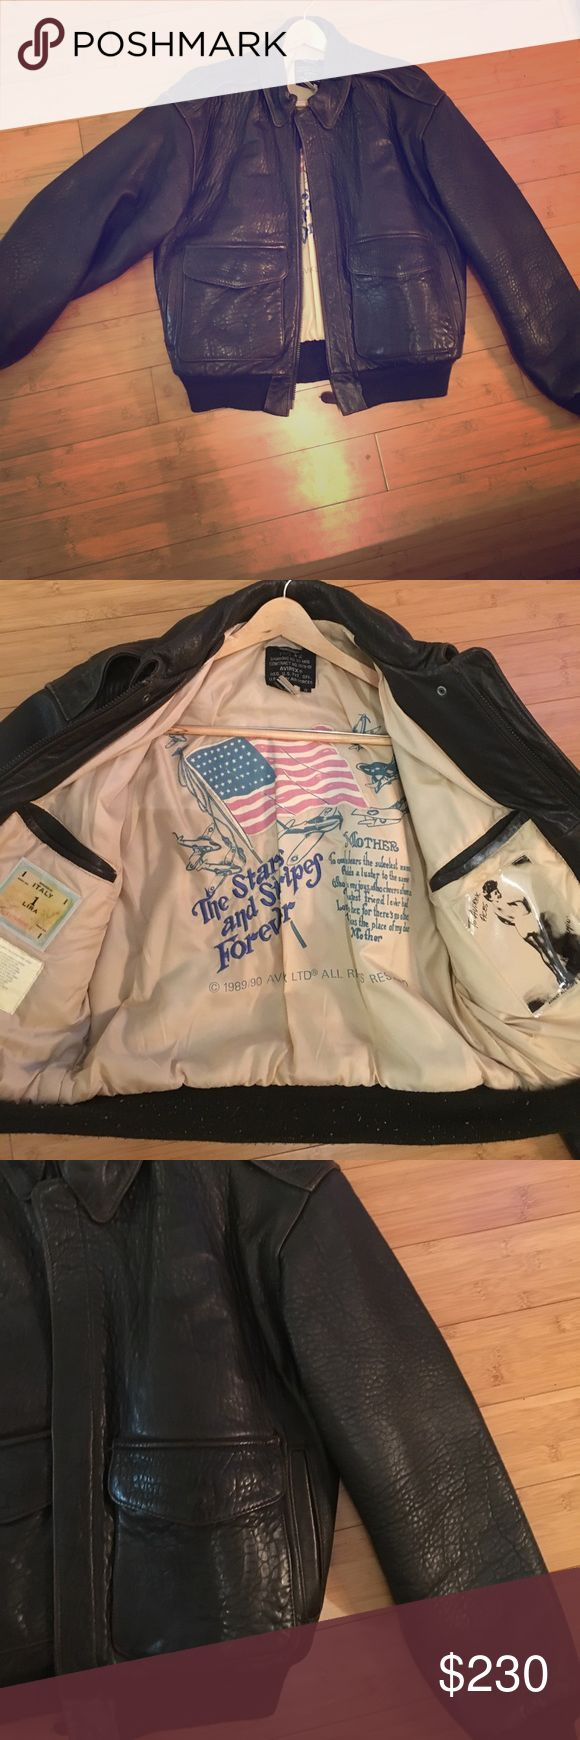 Authentic Avirex leather pilot jacket Check this out. This iconic jacket is awesome. A distressed leather sort of look. In excellent condition. Some light signs of wear. A little pilling around cotton elastic that hugs hips. A little bit of signs of wear on leather and overall just in excellent condition. avirex Jackets & Coats Bomber & Varsity